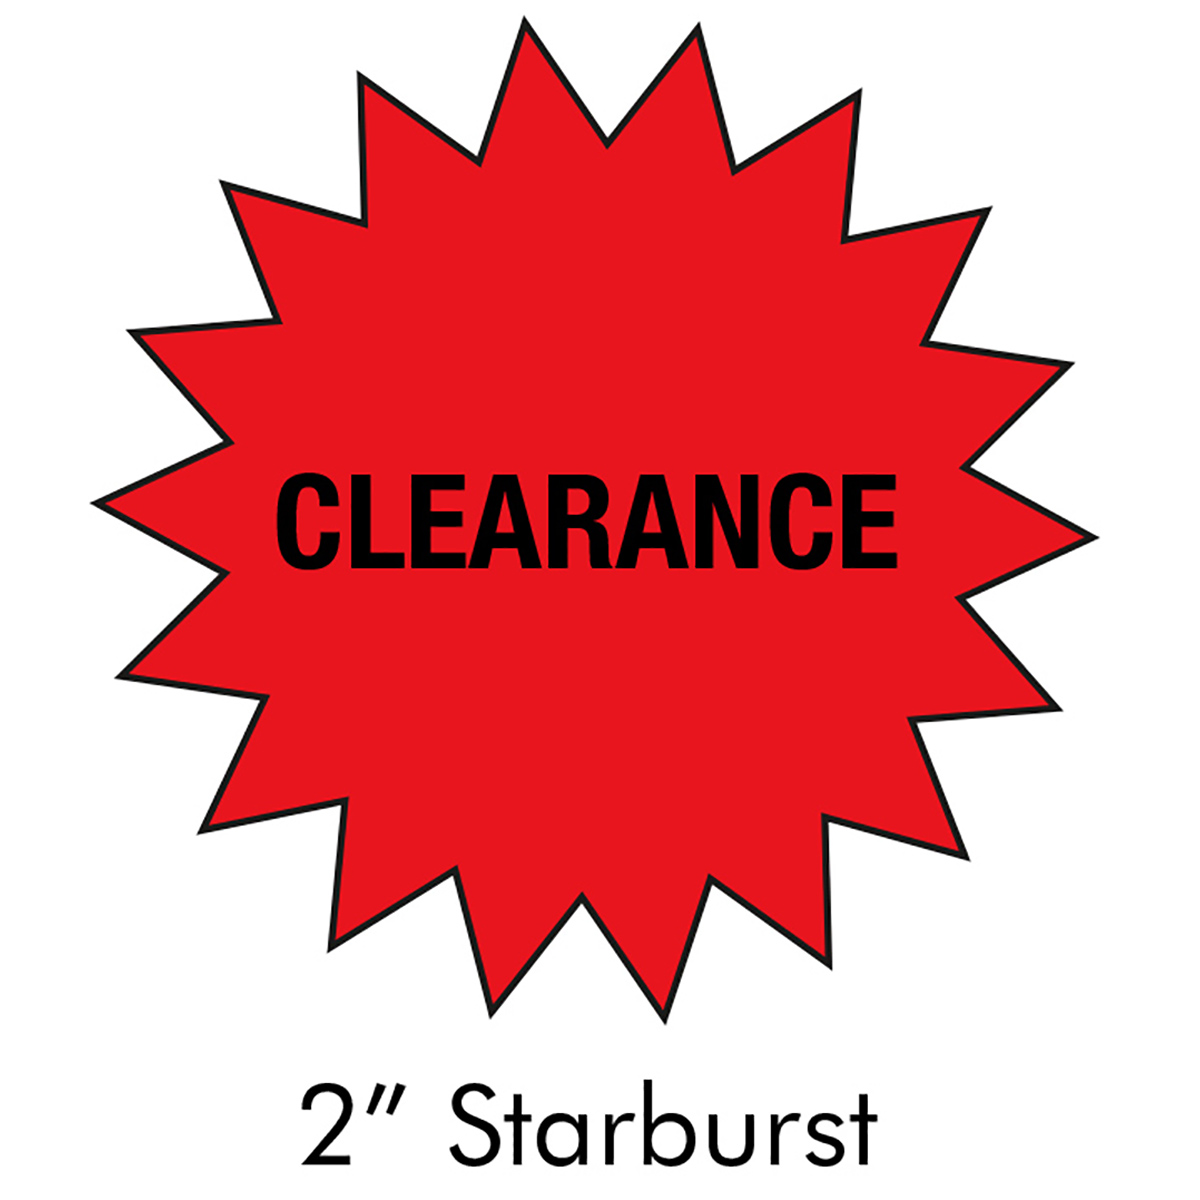 "2"" Starburst Clearance Label - LMCCTL110905C"